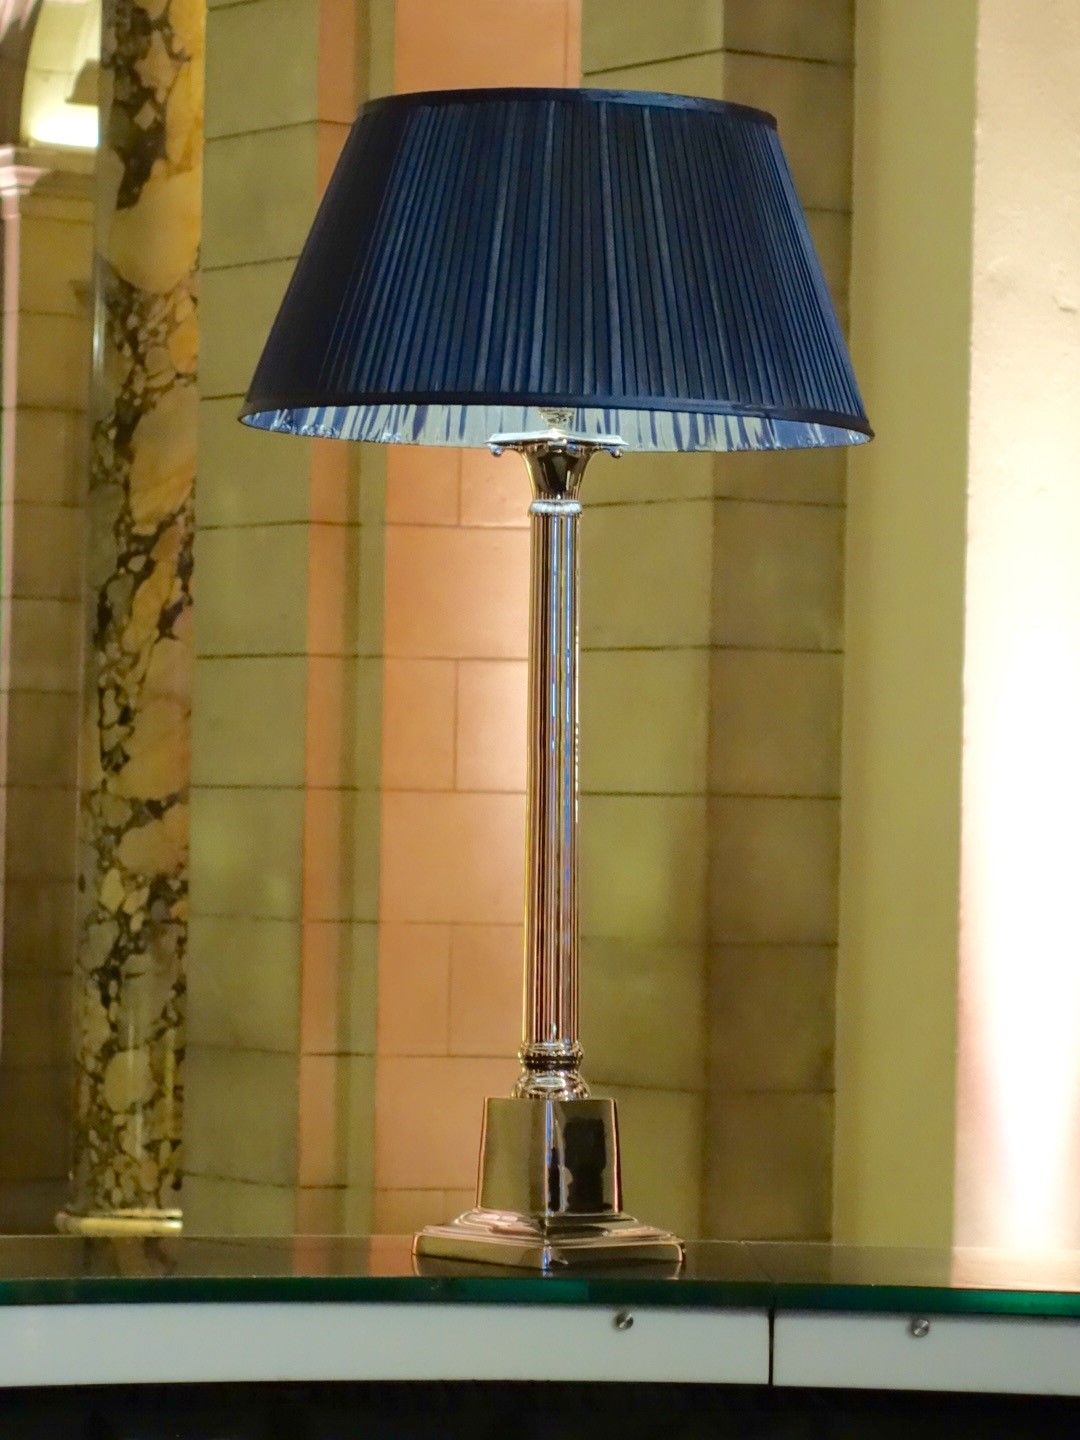 Corinthian lamp with stylish navy couture shade table lamps corinthian lamp with stylish navy couture shade geotapseo Choice Image